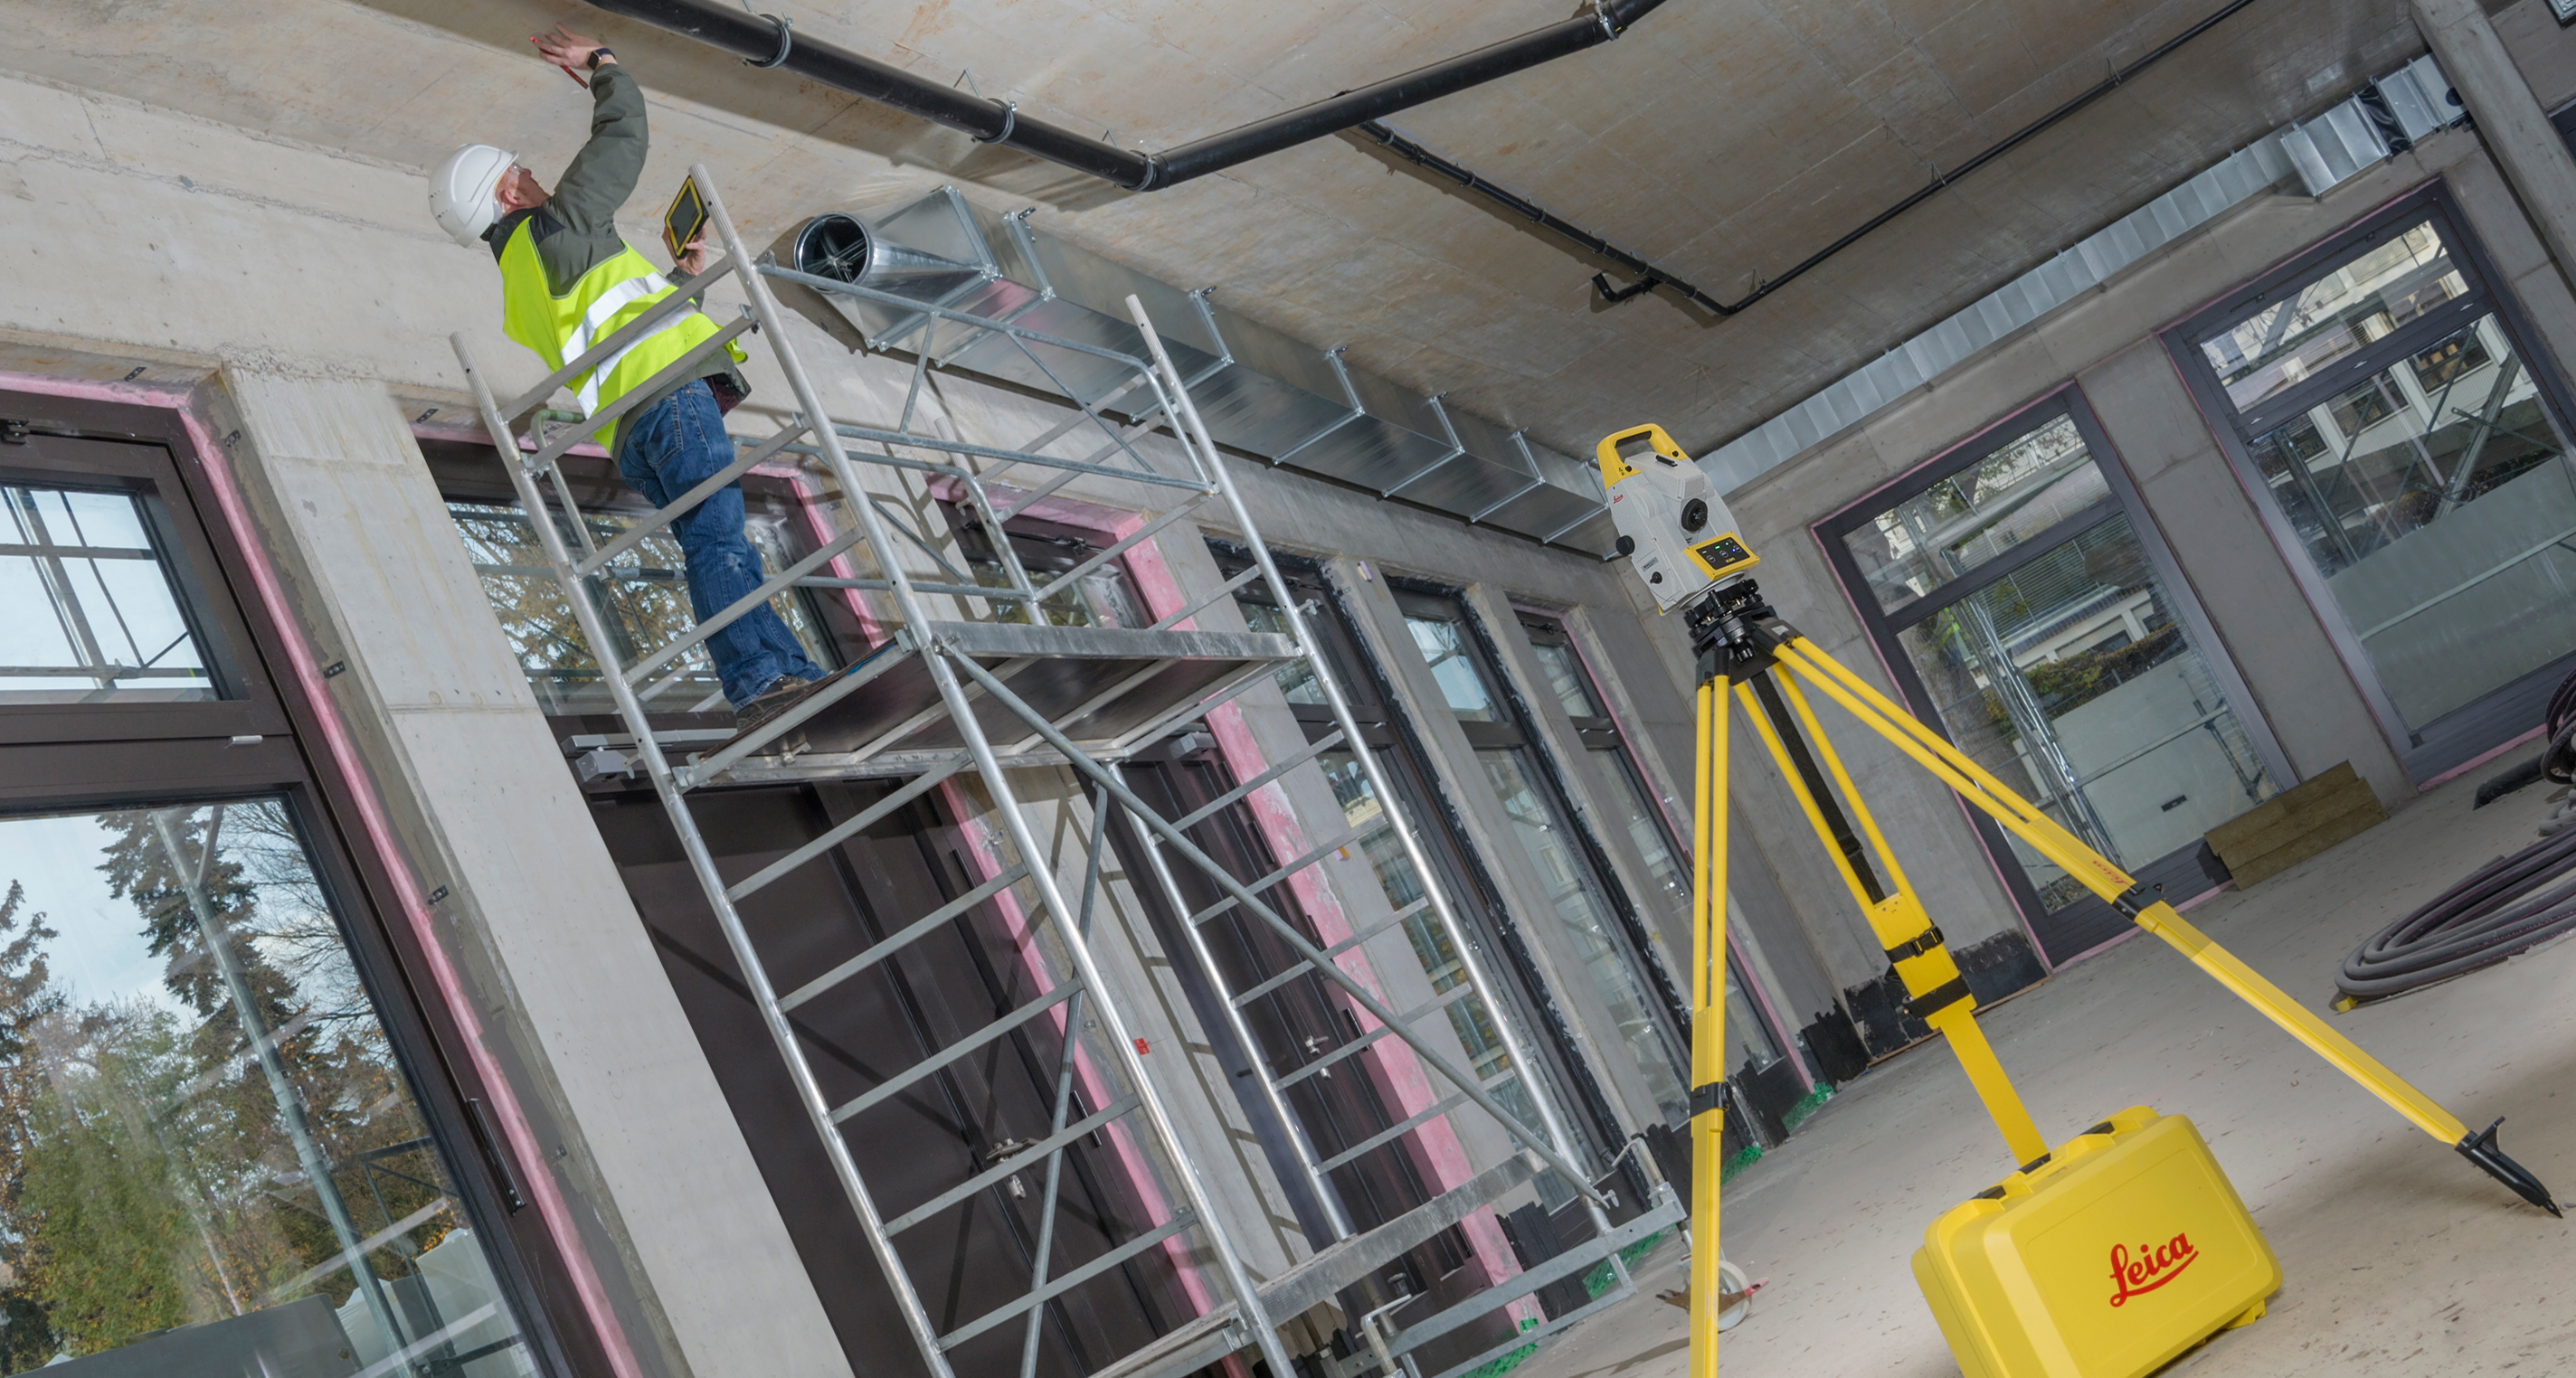 New Leica iCON iCT30 provides easy-to-use operations for layout tasks in construction